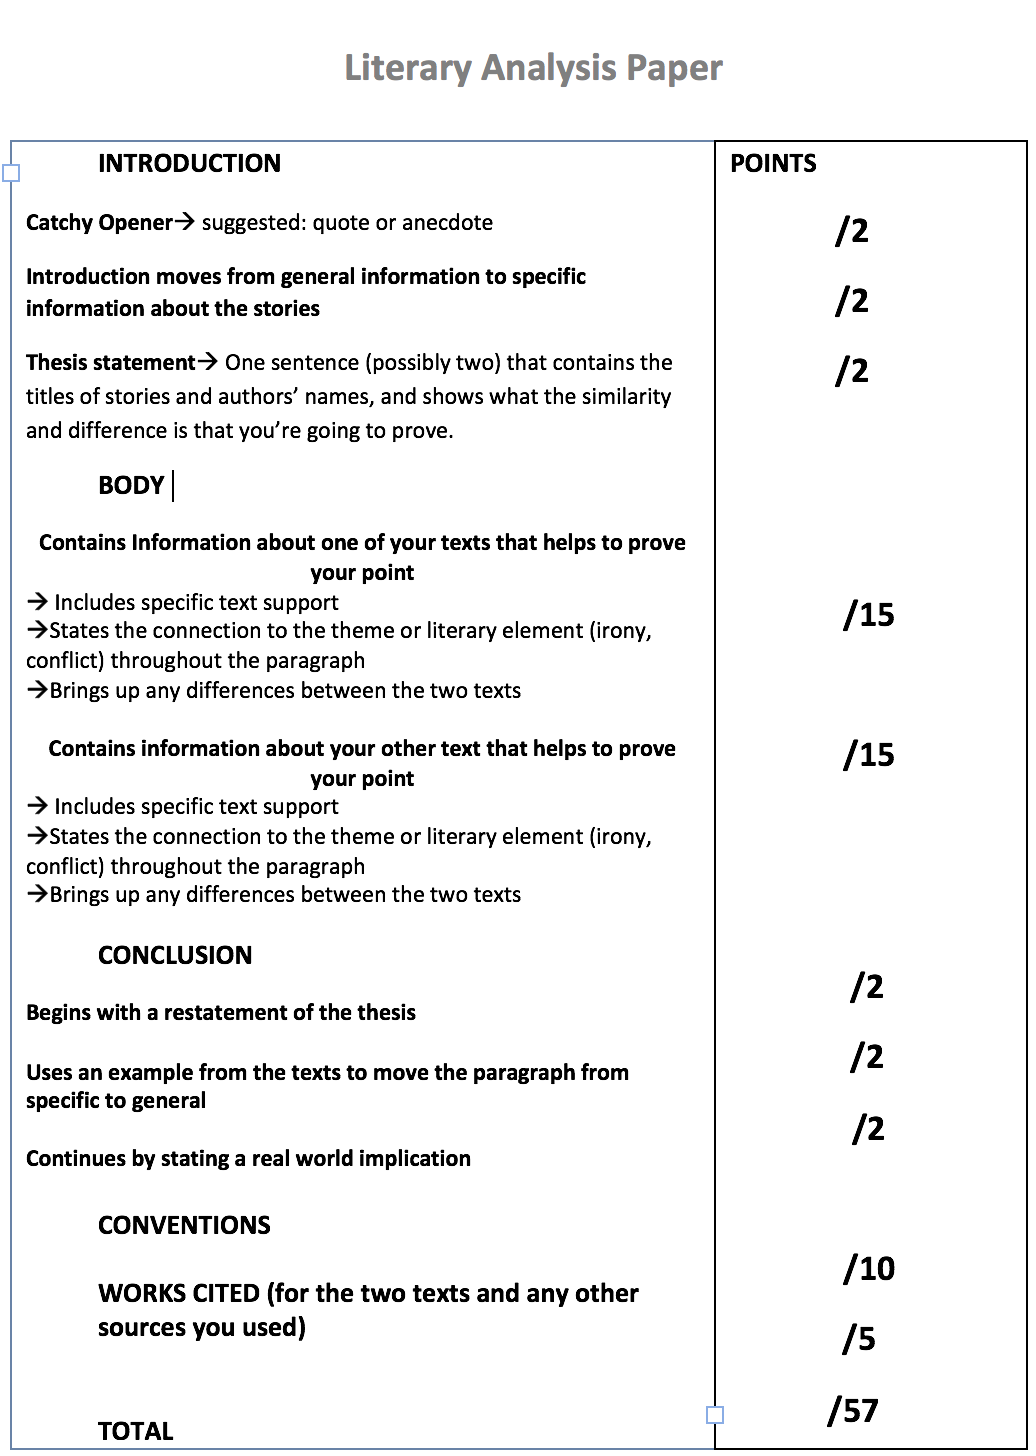 elementary rubric for literary essay Rubric for literary analysis papers the a paper thesis presents a strong assertion or claim, is tightly focused essay shows understanding of the book.